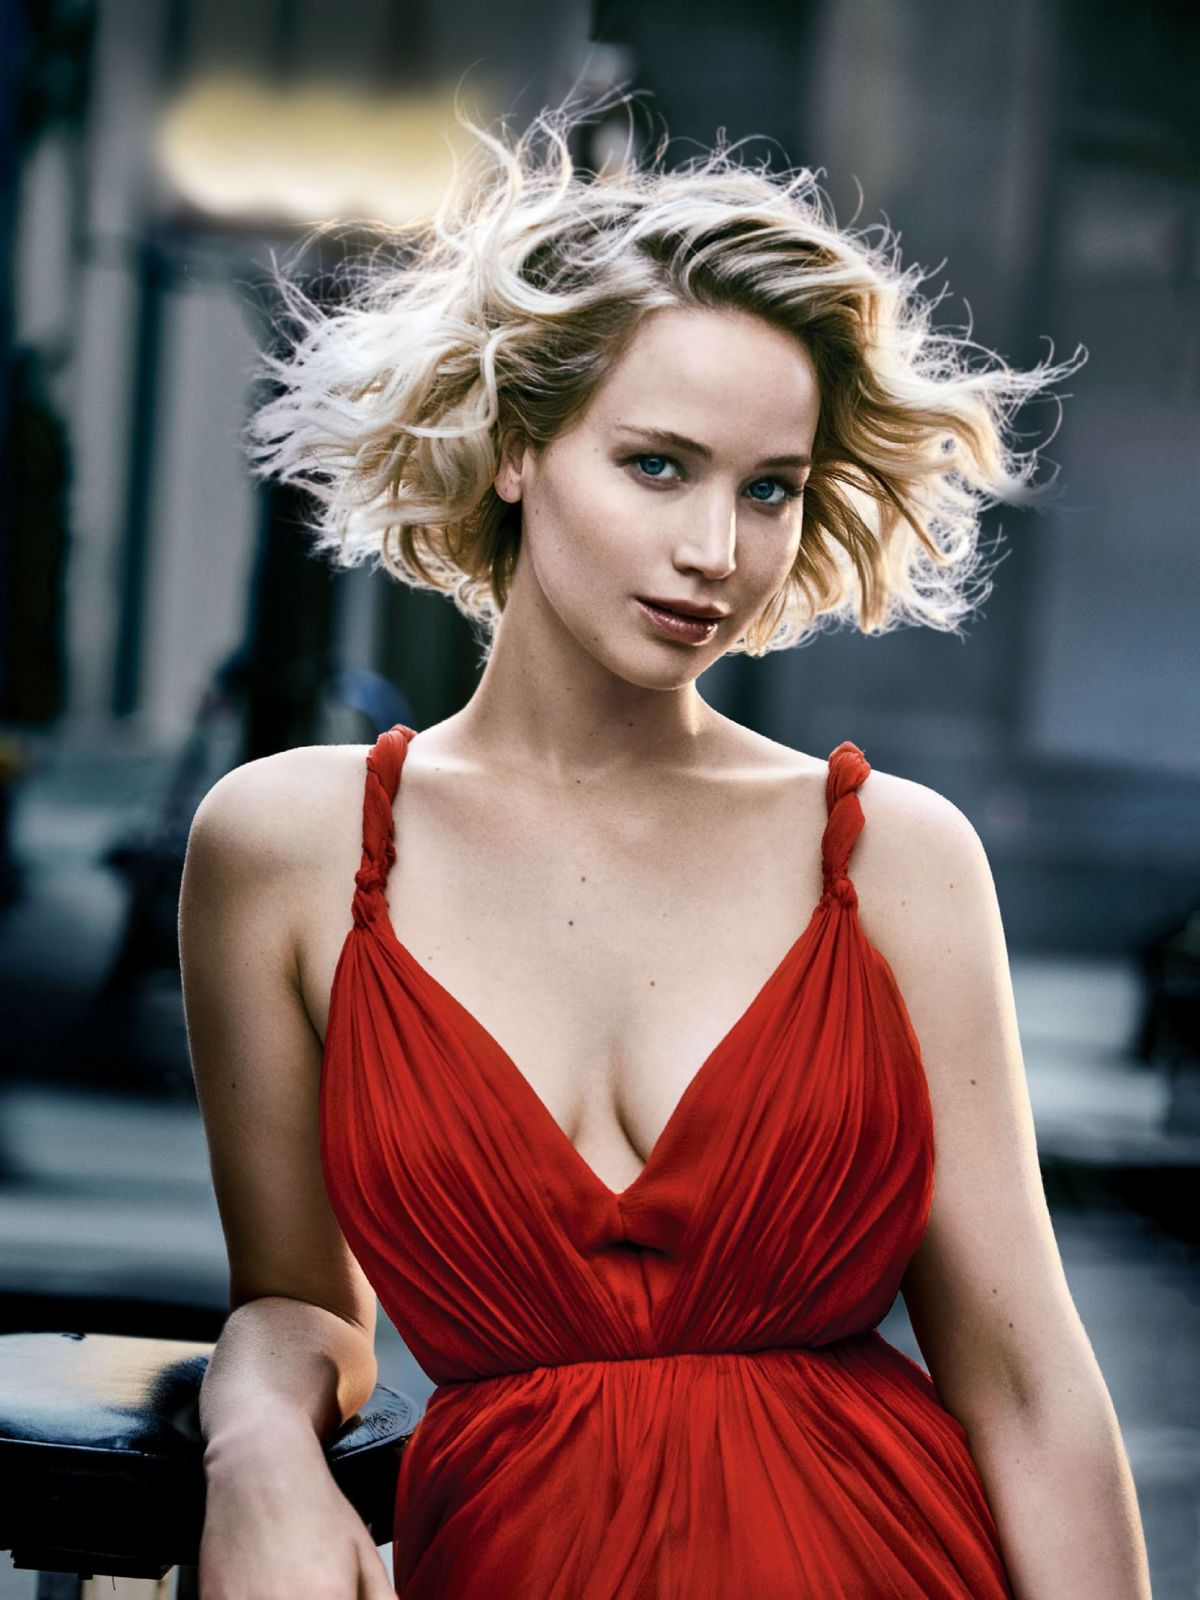 JENNIFER LAWRENCE in Vanity Fair, Holiday 2016/2017 Issue